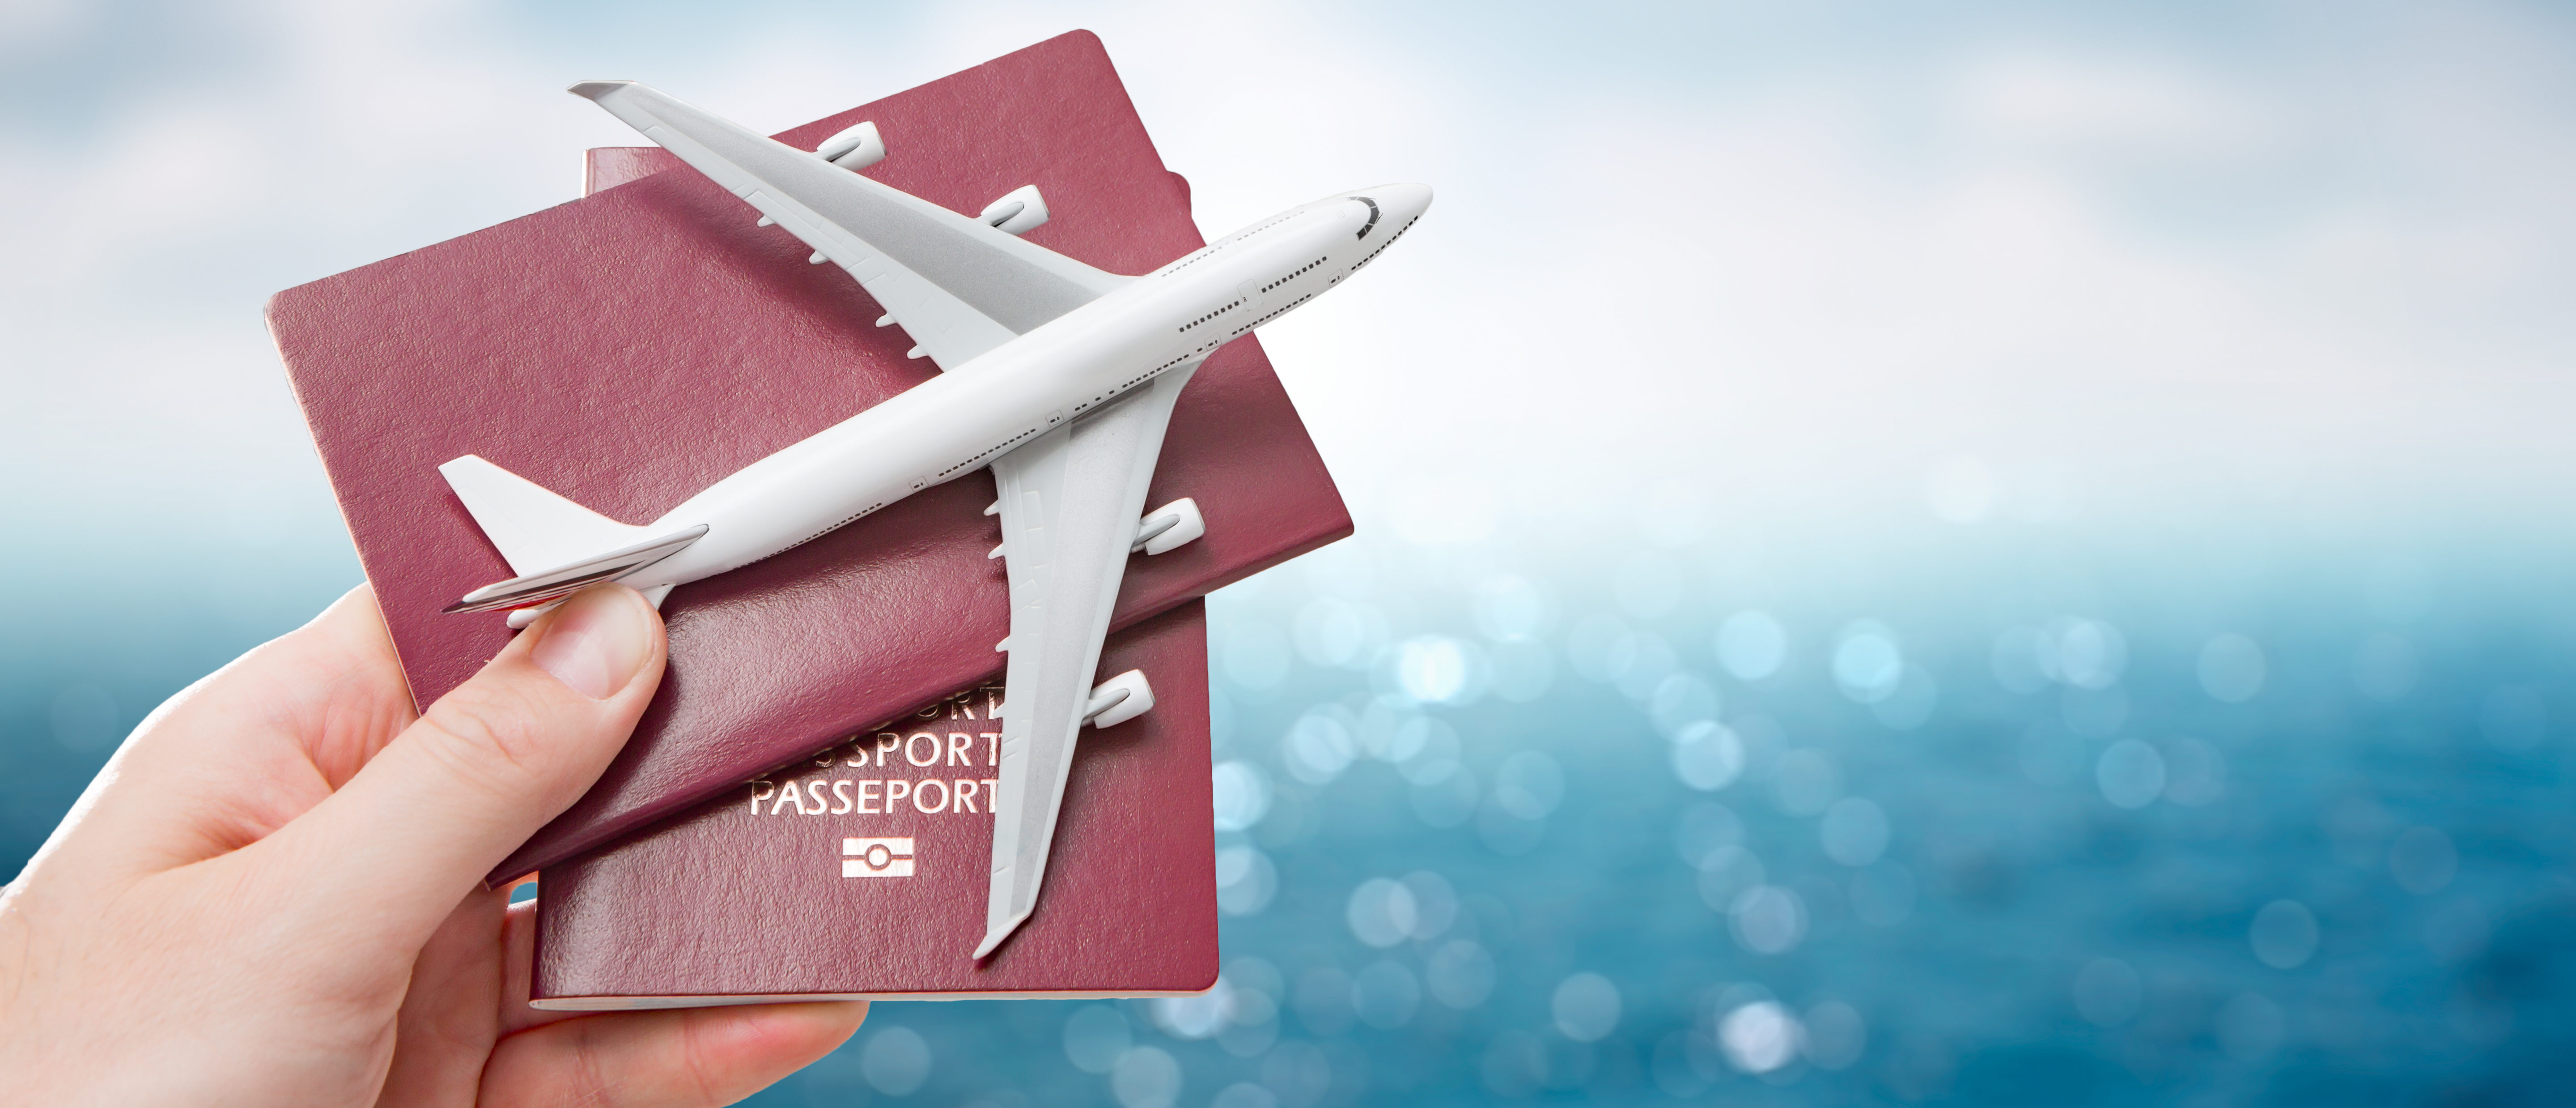 Someone holds a passport and an airplane in their hand. (Shutterstock)